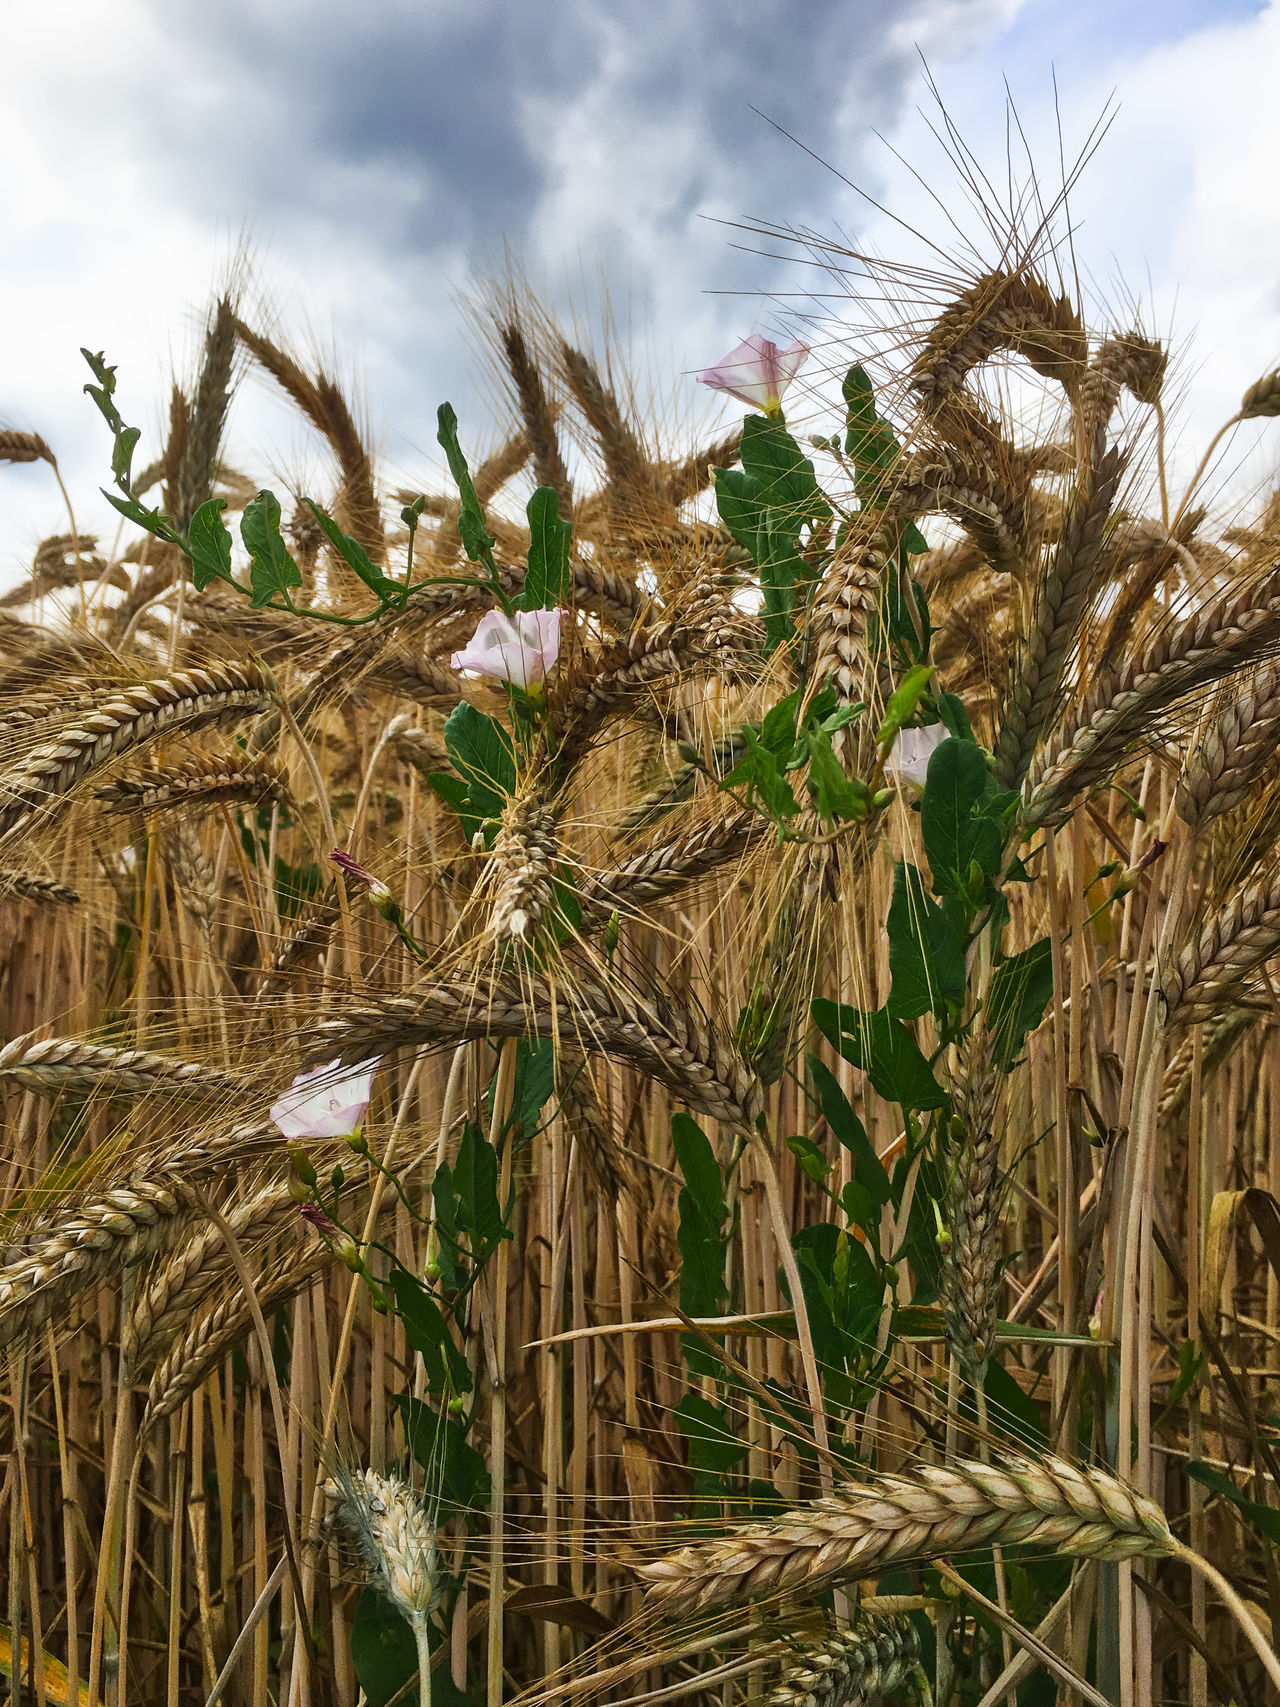 Weizen Agriculture Beauty In Nature Cereal Plant Close-up Corn Crop  Day Ear Of Wheat Growth Korn Low Angle View Nature No People Outdoors Plant Rural Scene Rye - Grain Sky Straw Wheat